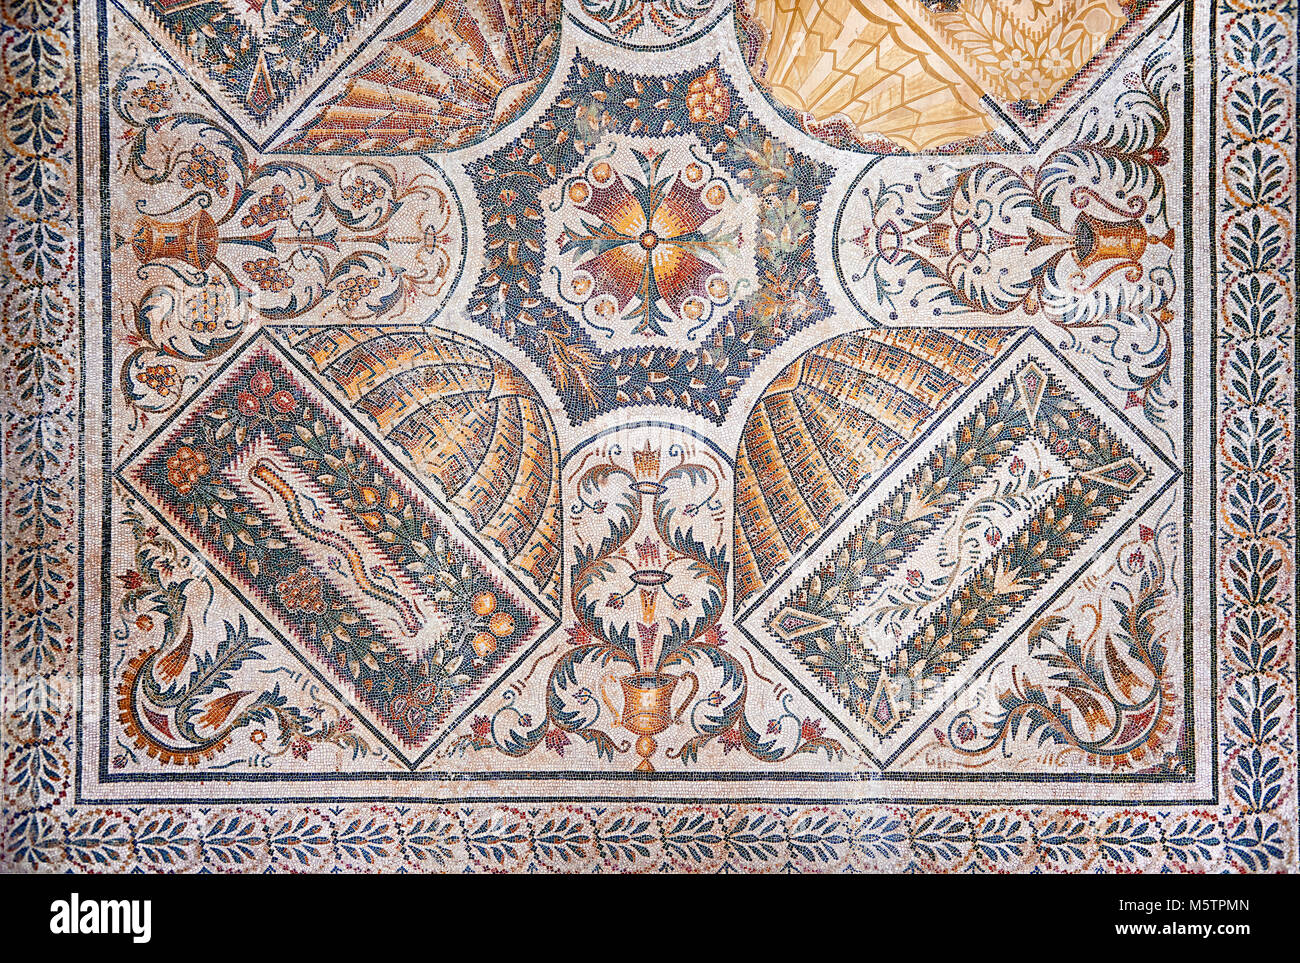 Roman mosaics from the north African Roman province of Africanus . Bardo Museum, Tunis, Tunisia. Stock Photo